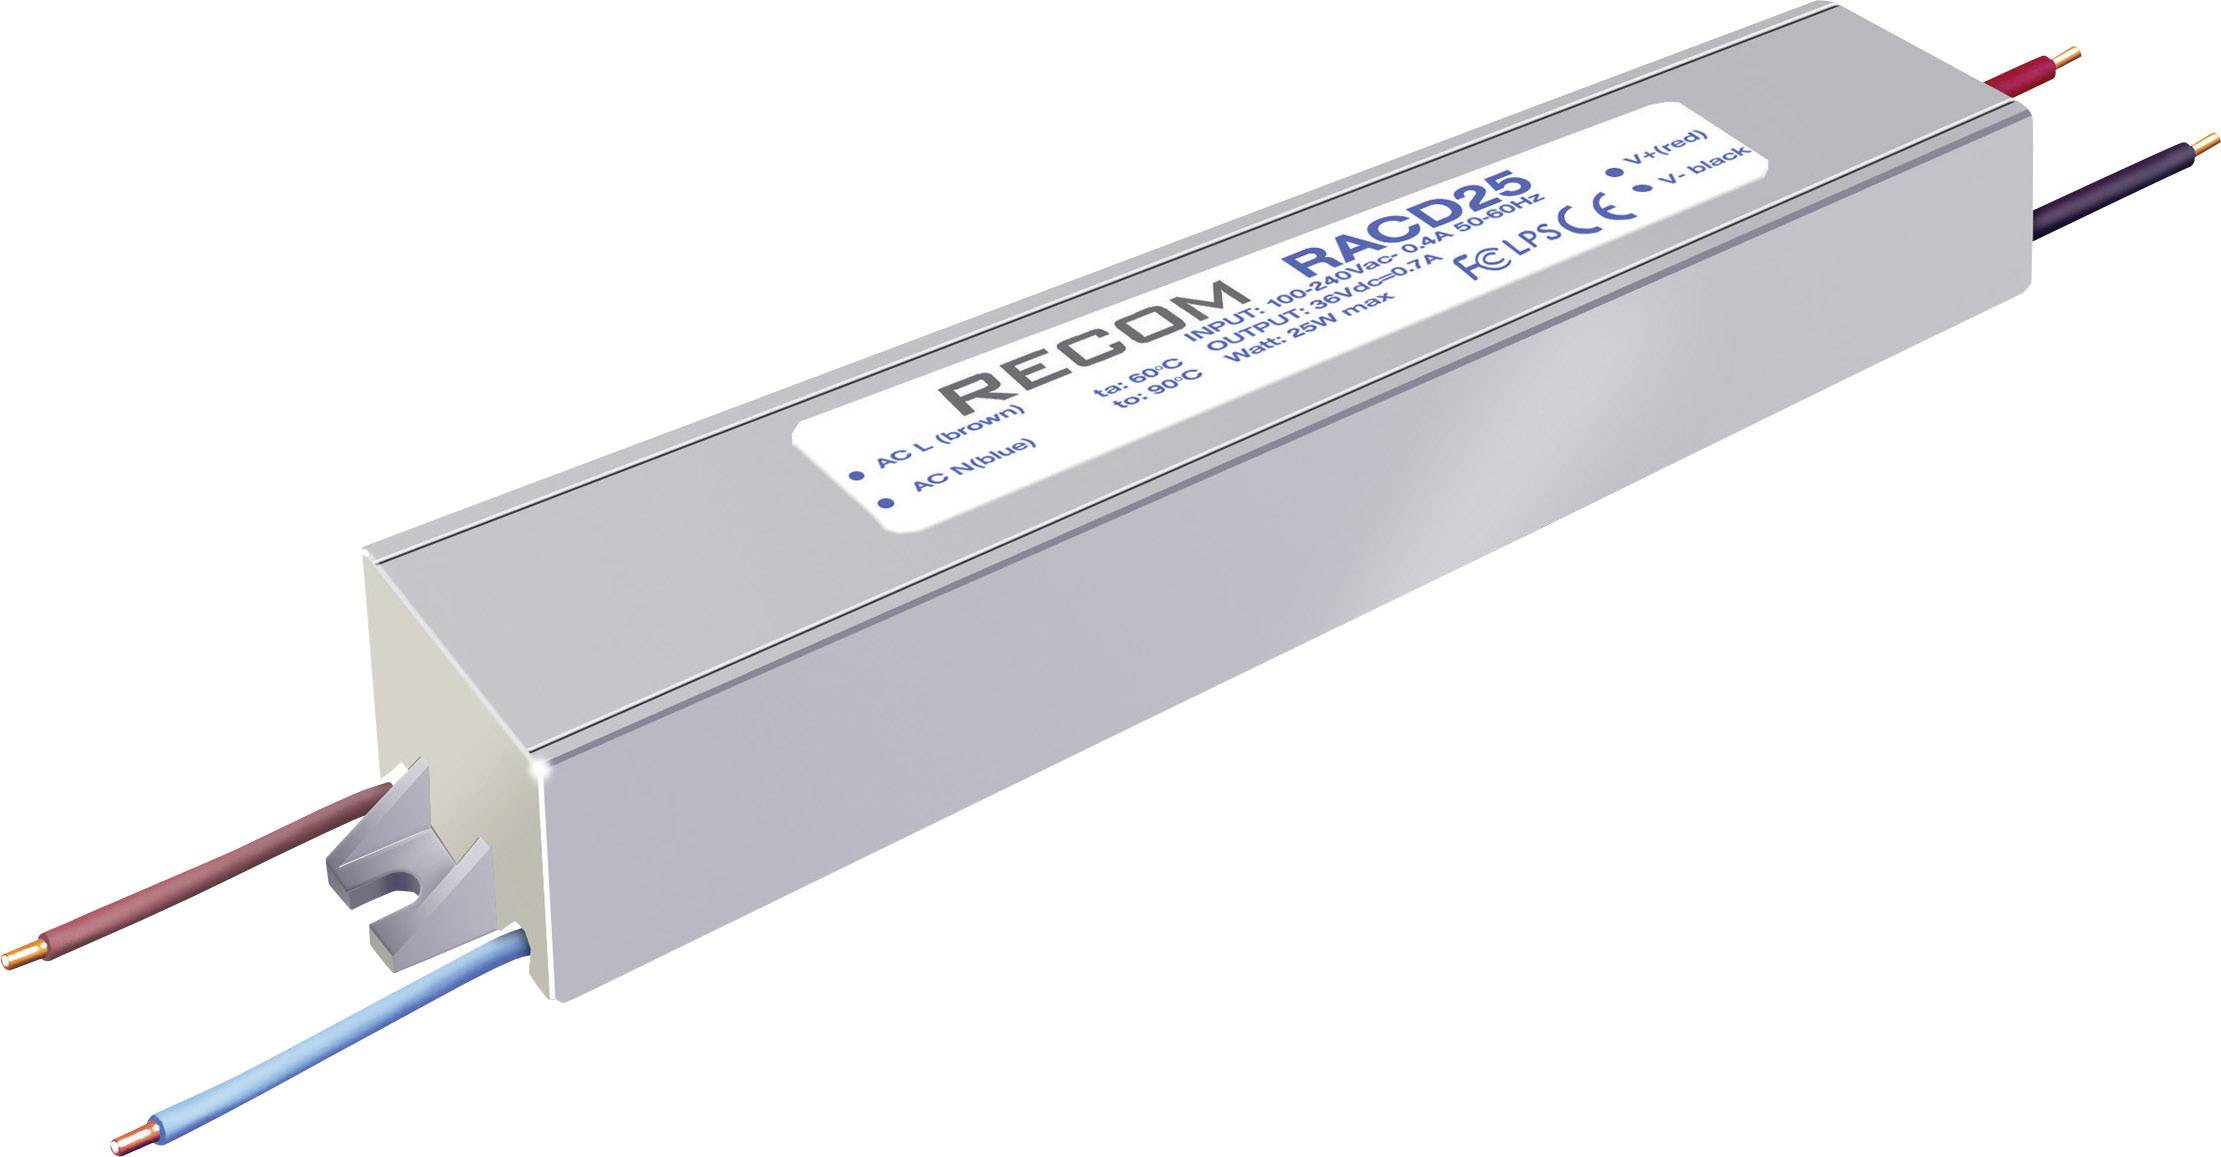 LED driver Recom Lighting RACD25-700P, 25 W (max), 0.7 A, 21 - 36 V/DC